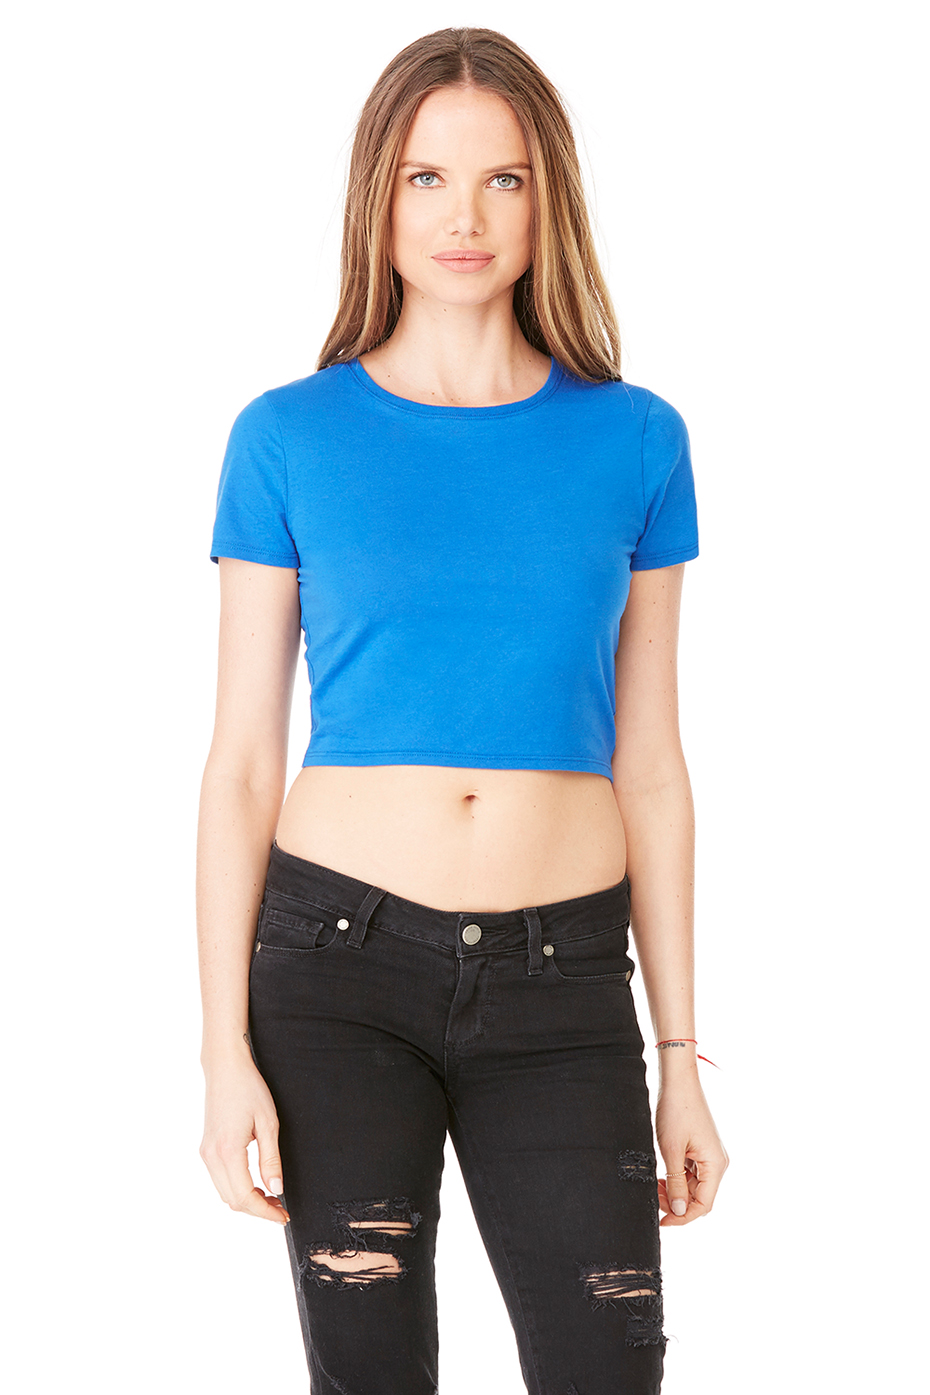 Find great deals on eBay for crop tee. Shop with confidence.